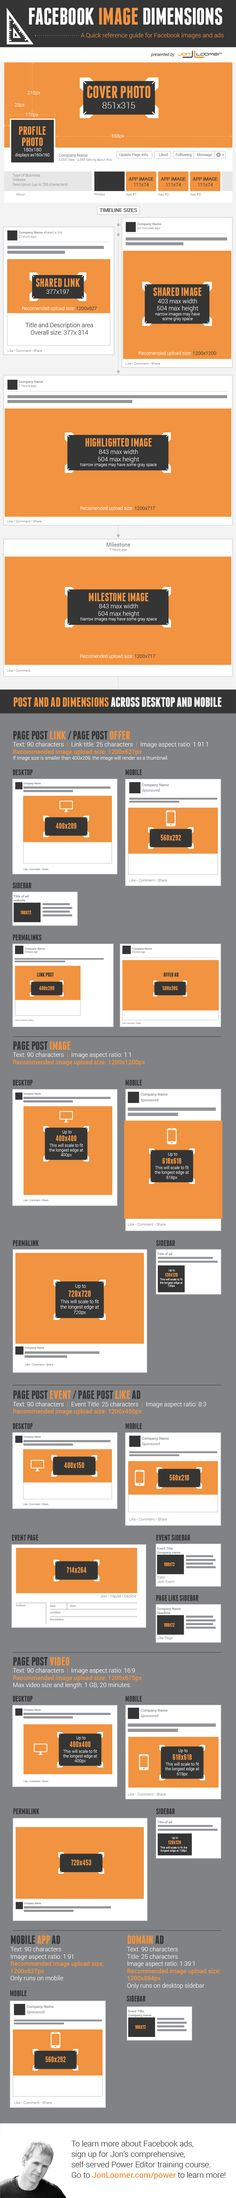 facebook image dimensions timeline newsfeed posts ads All Facebook Image Dimensions: Timeline, Posts, Ads [Infographic]